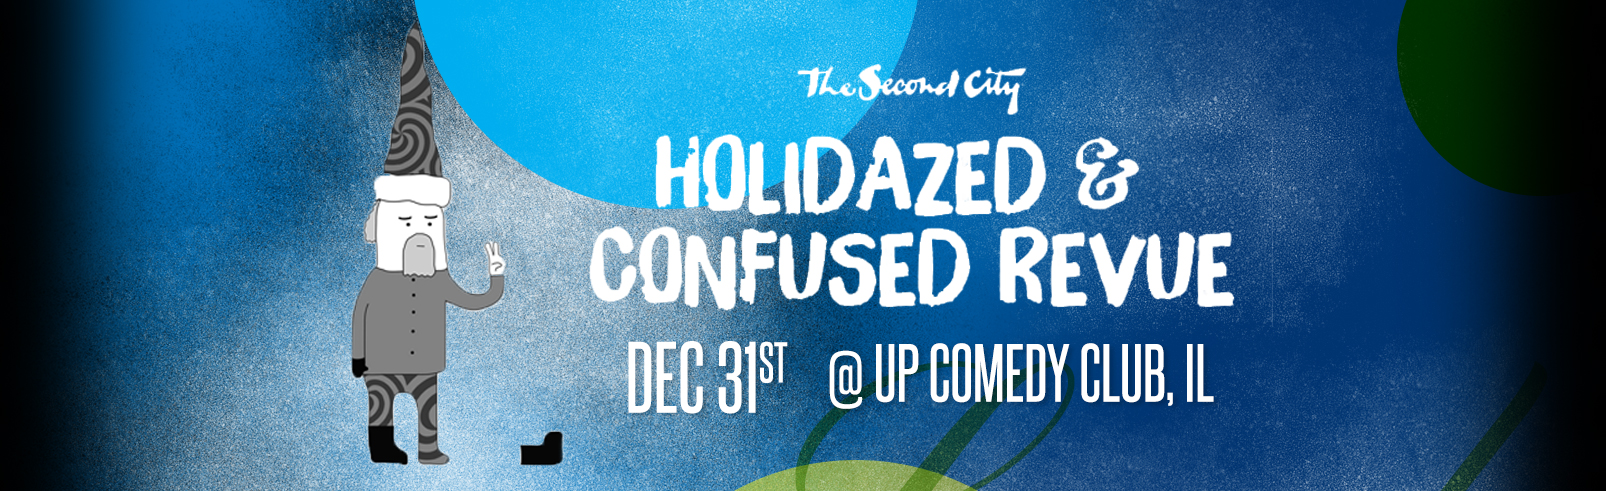 Holidazed & Confused @ UP Comedy Club